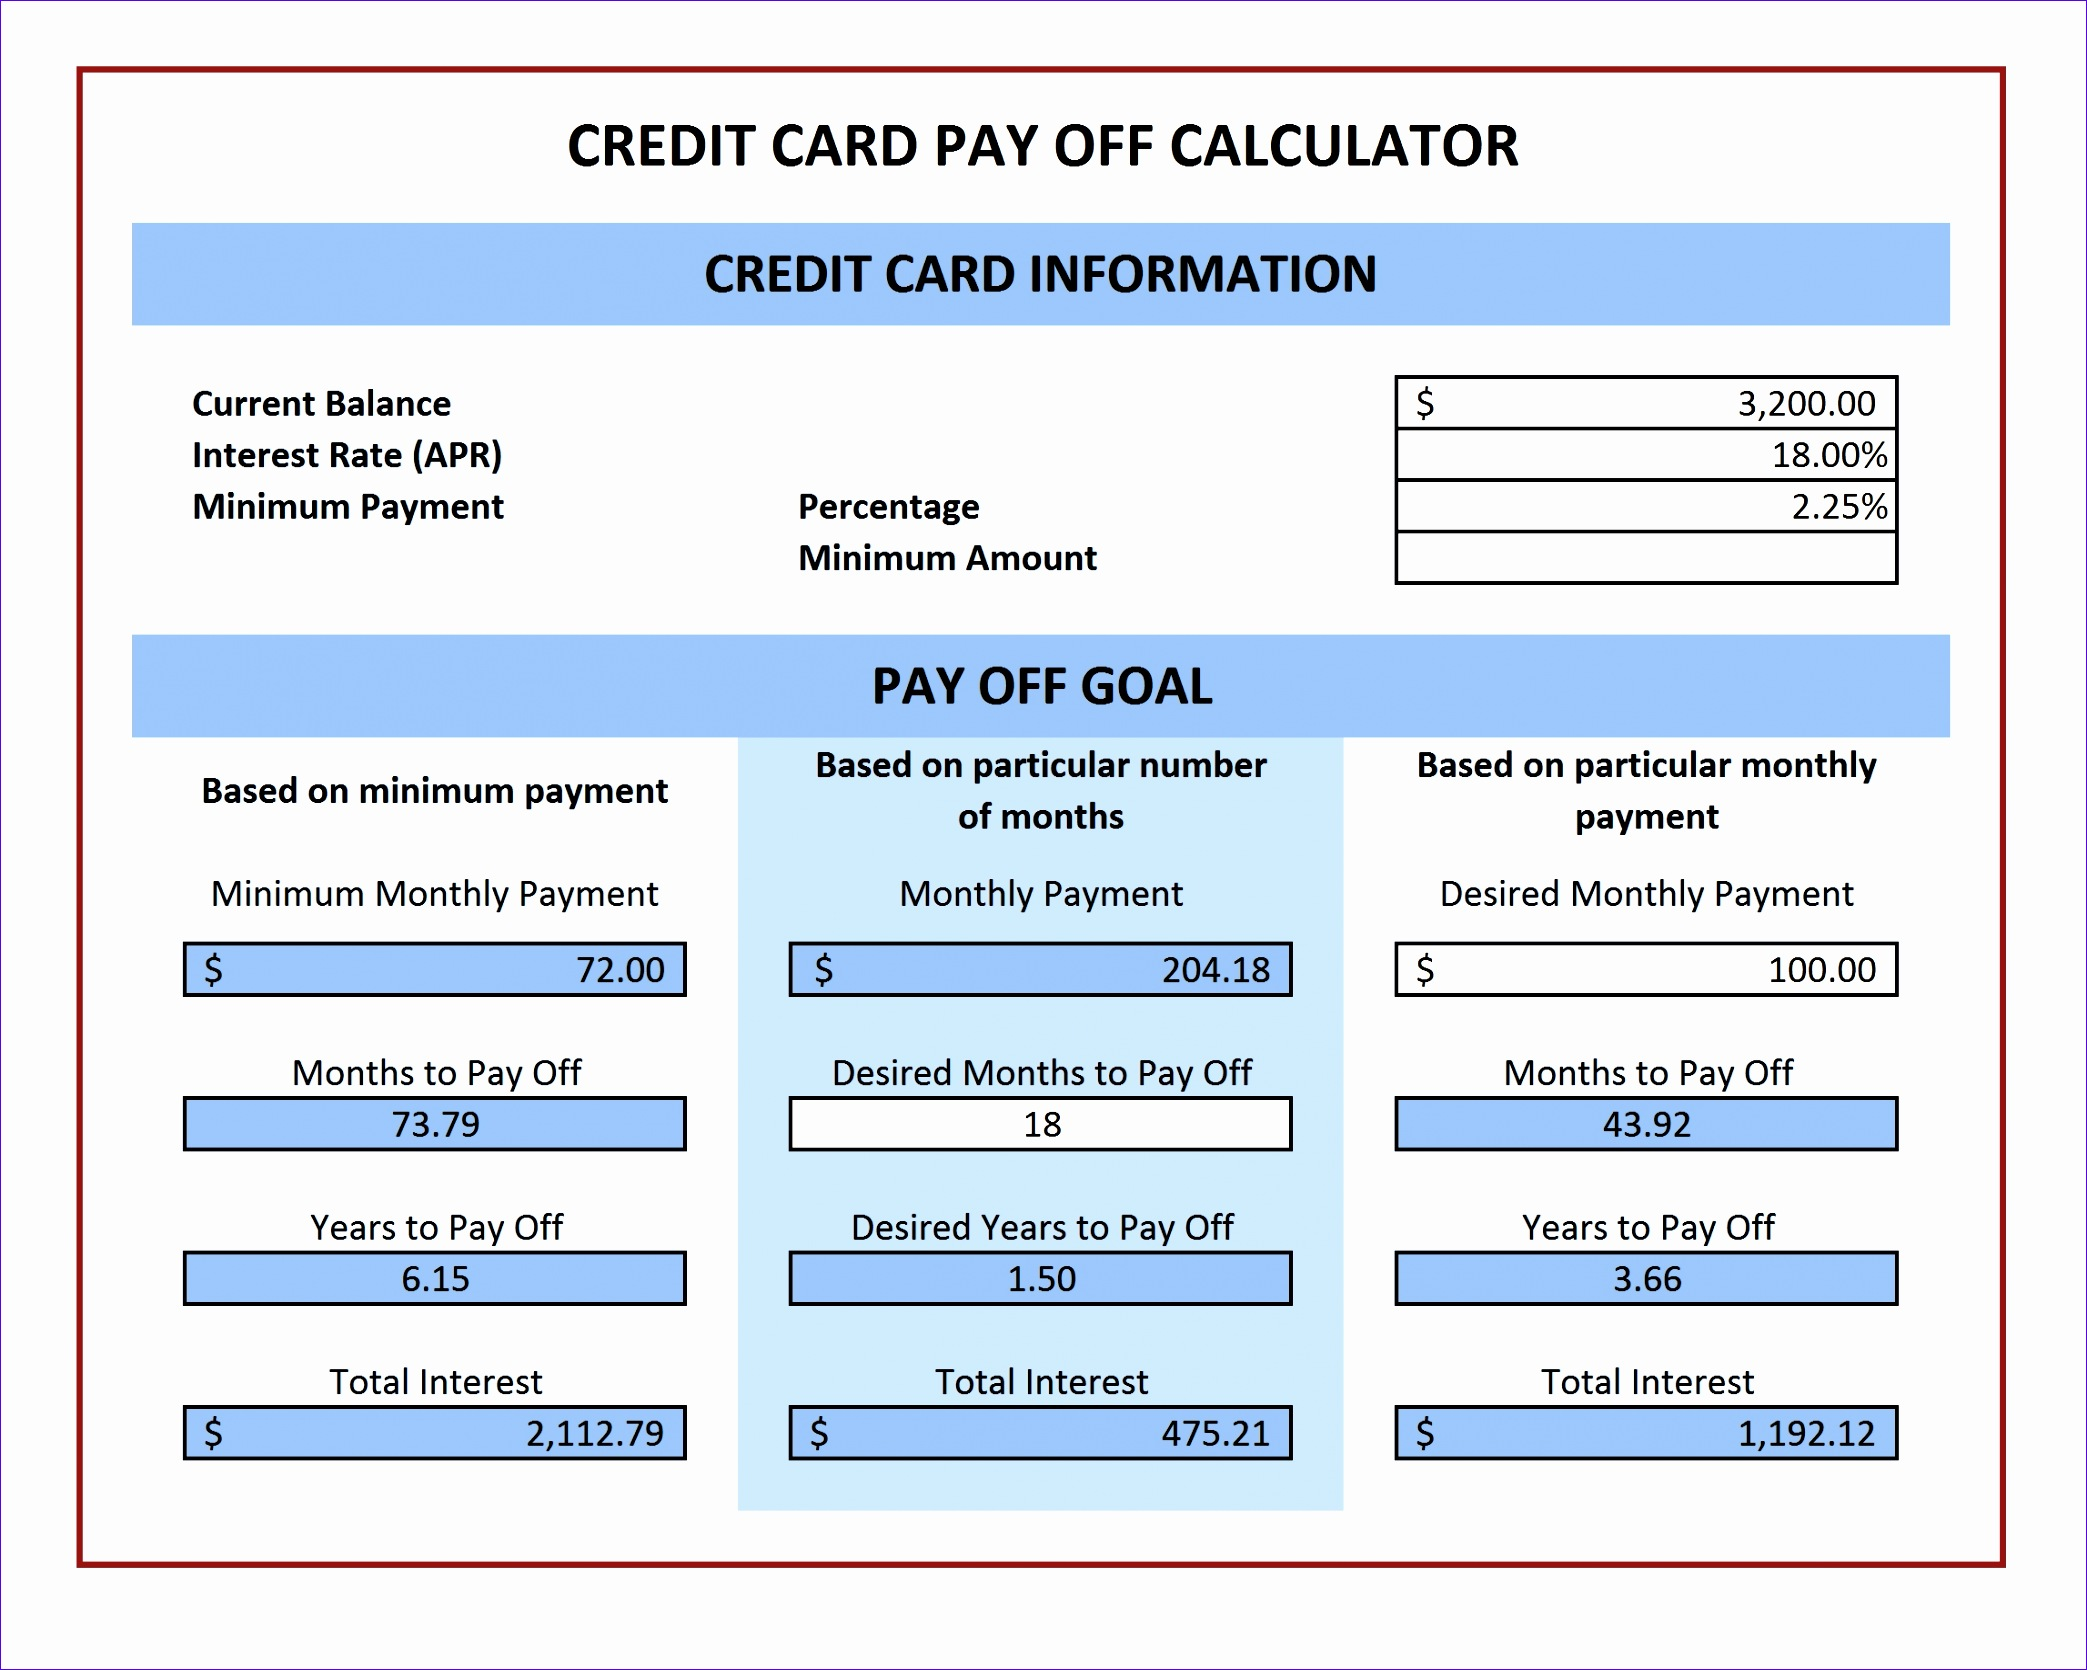 Car Loan Calculator With Extra Payments >> 6 Loan Repayment Calculator Excel Template - ExcelTemplates - ExcelTemplates